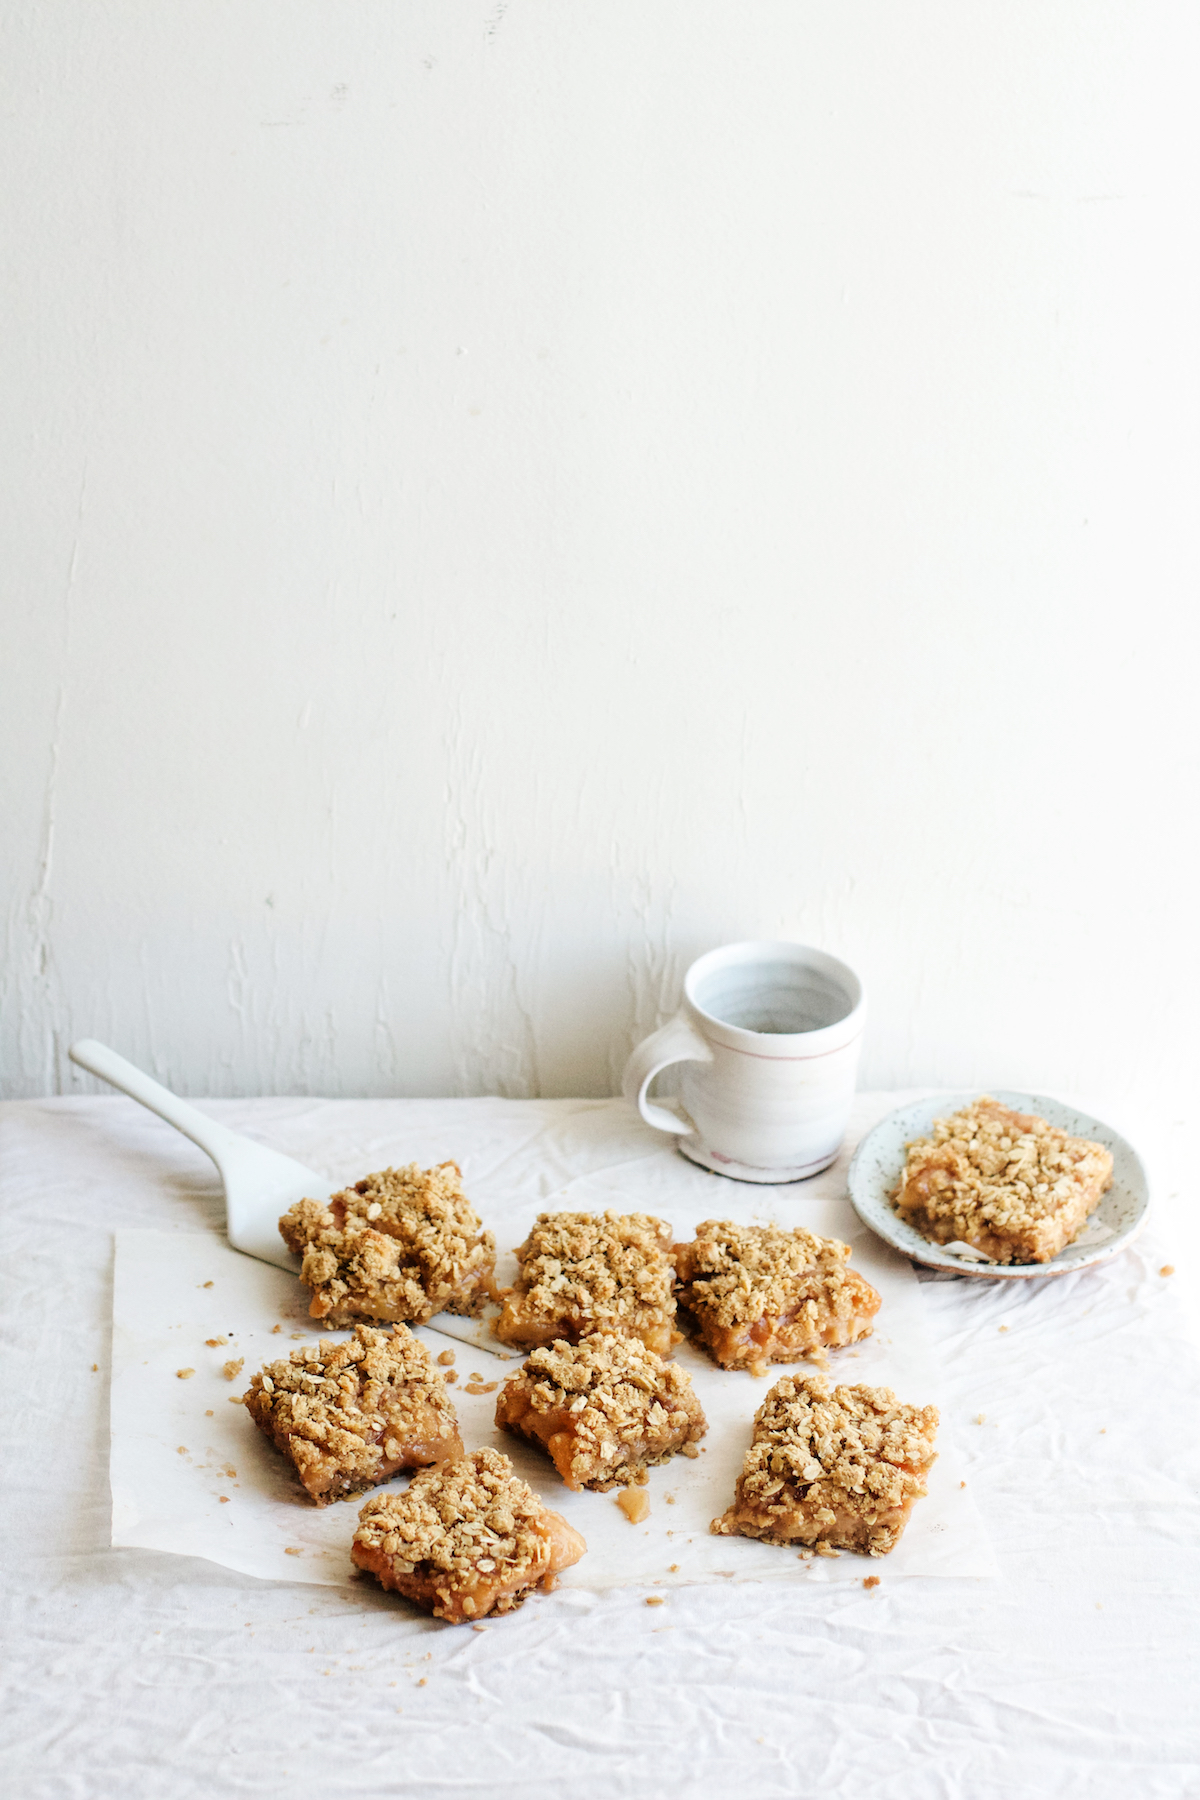 Caramelized Peach + Orange Blossom Oat Crumble Bars | Ruby Josephine